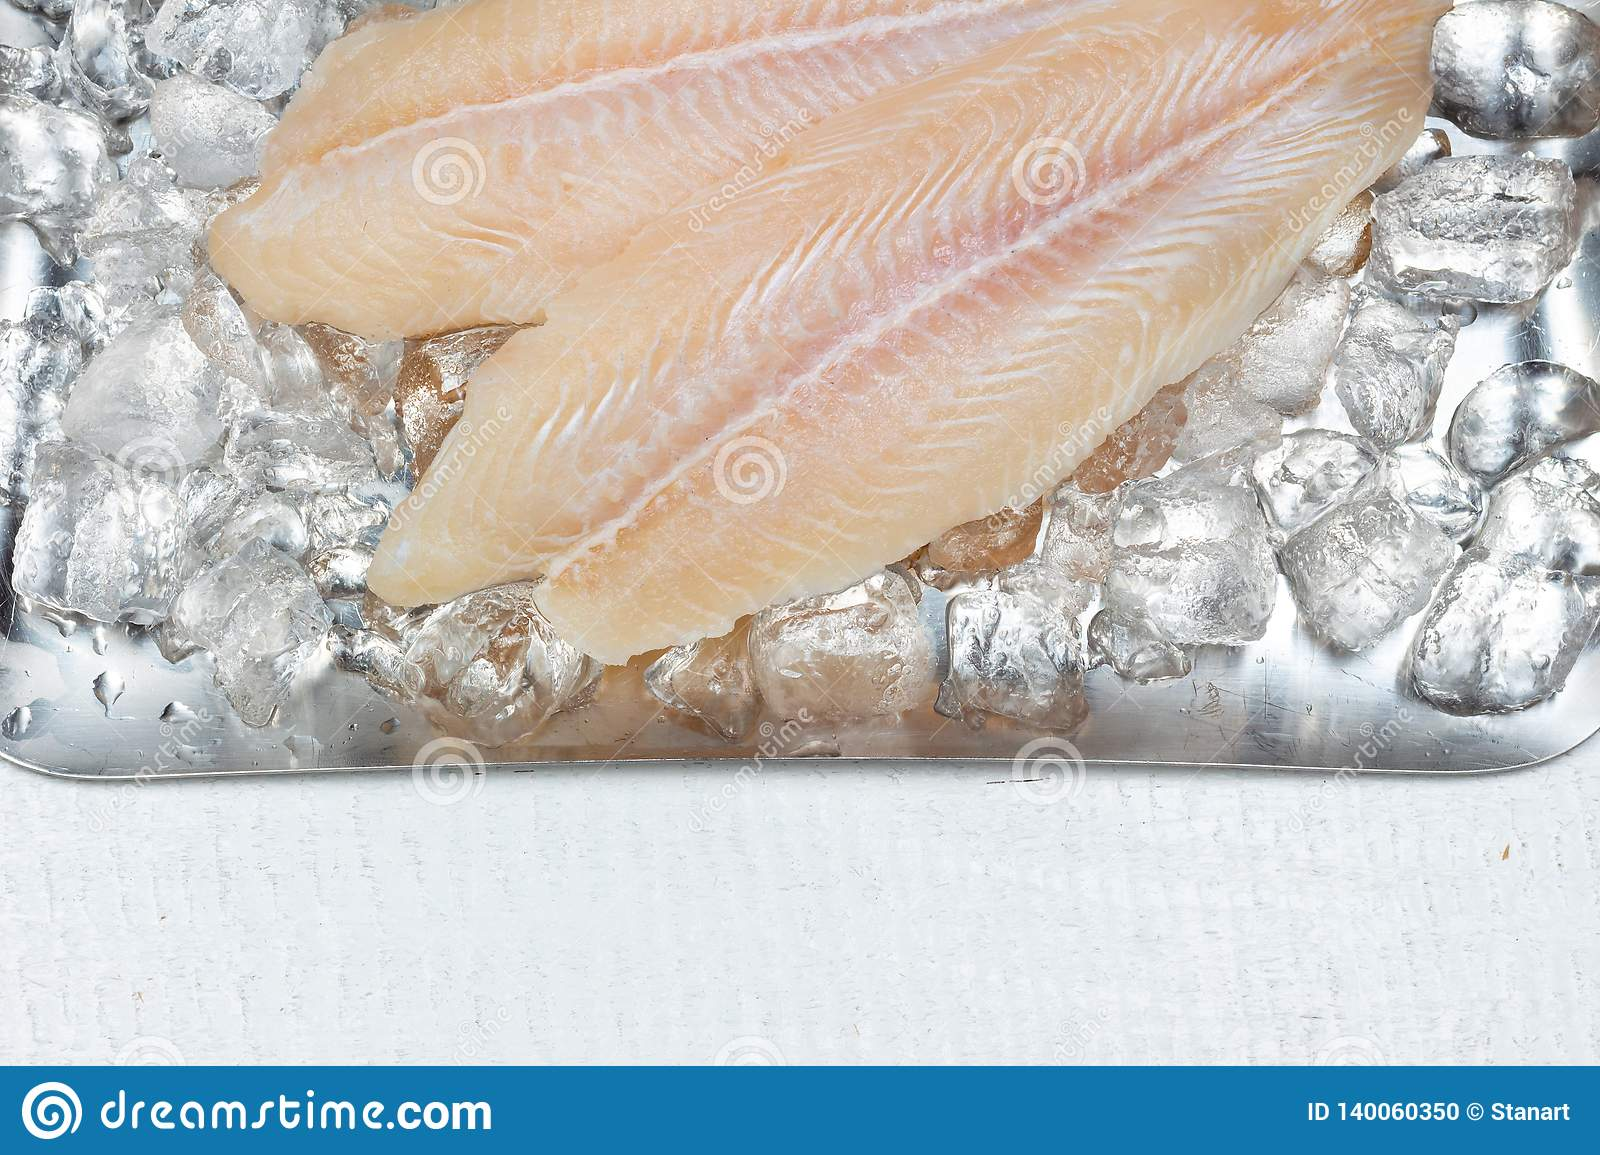 Pangasius basa fish fillet swai river cobbler bocourti fresh on ice with copy space